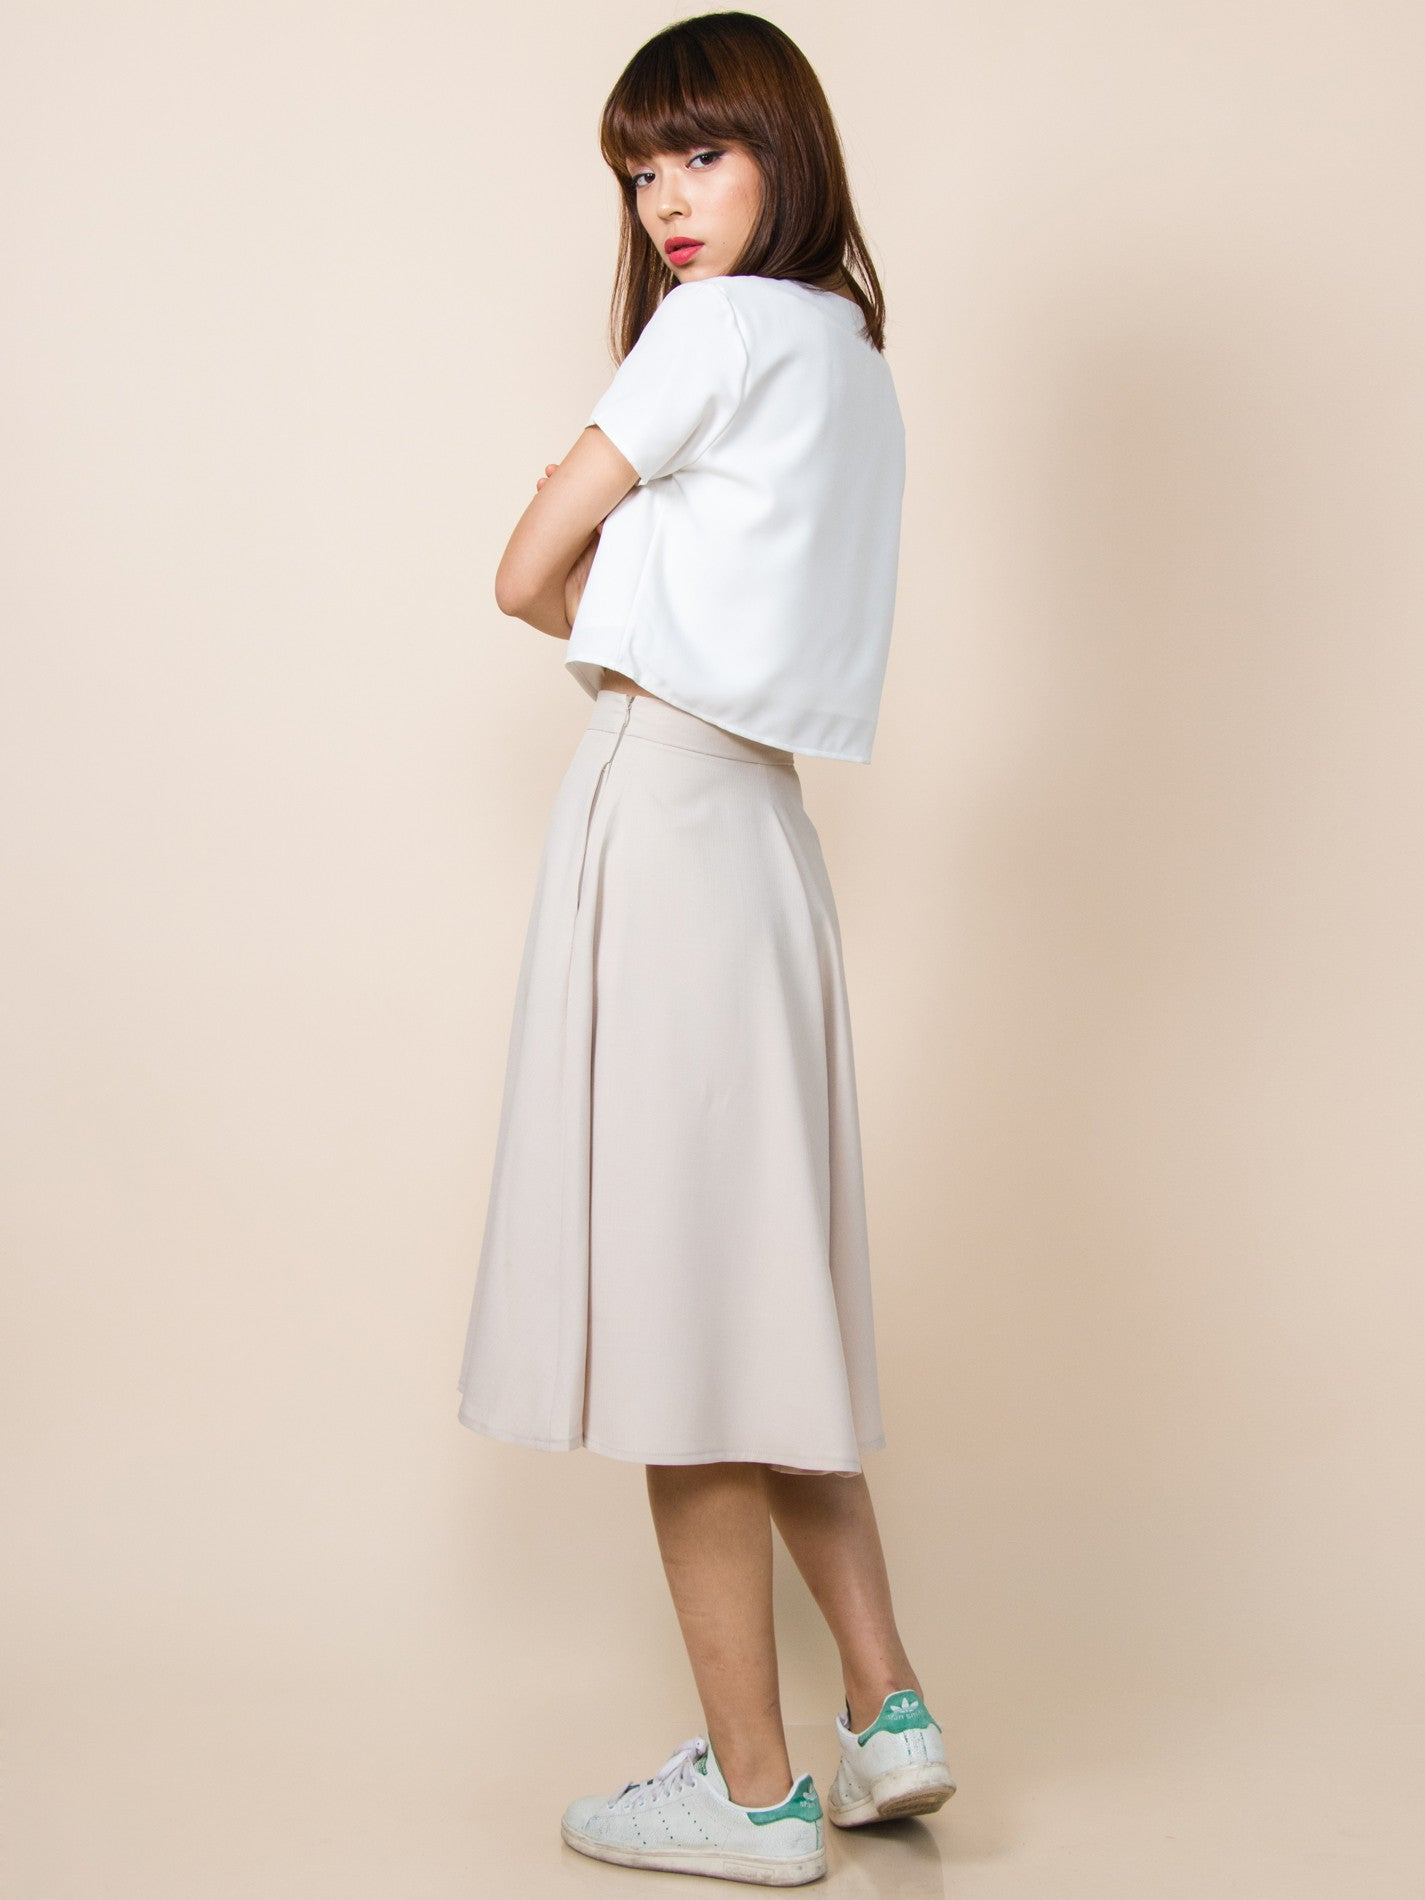 LANA Midi Skirt with Pockets (Neutral)